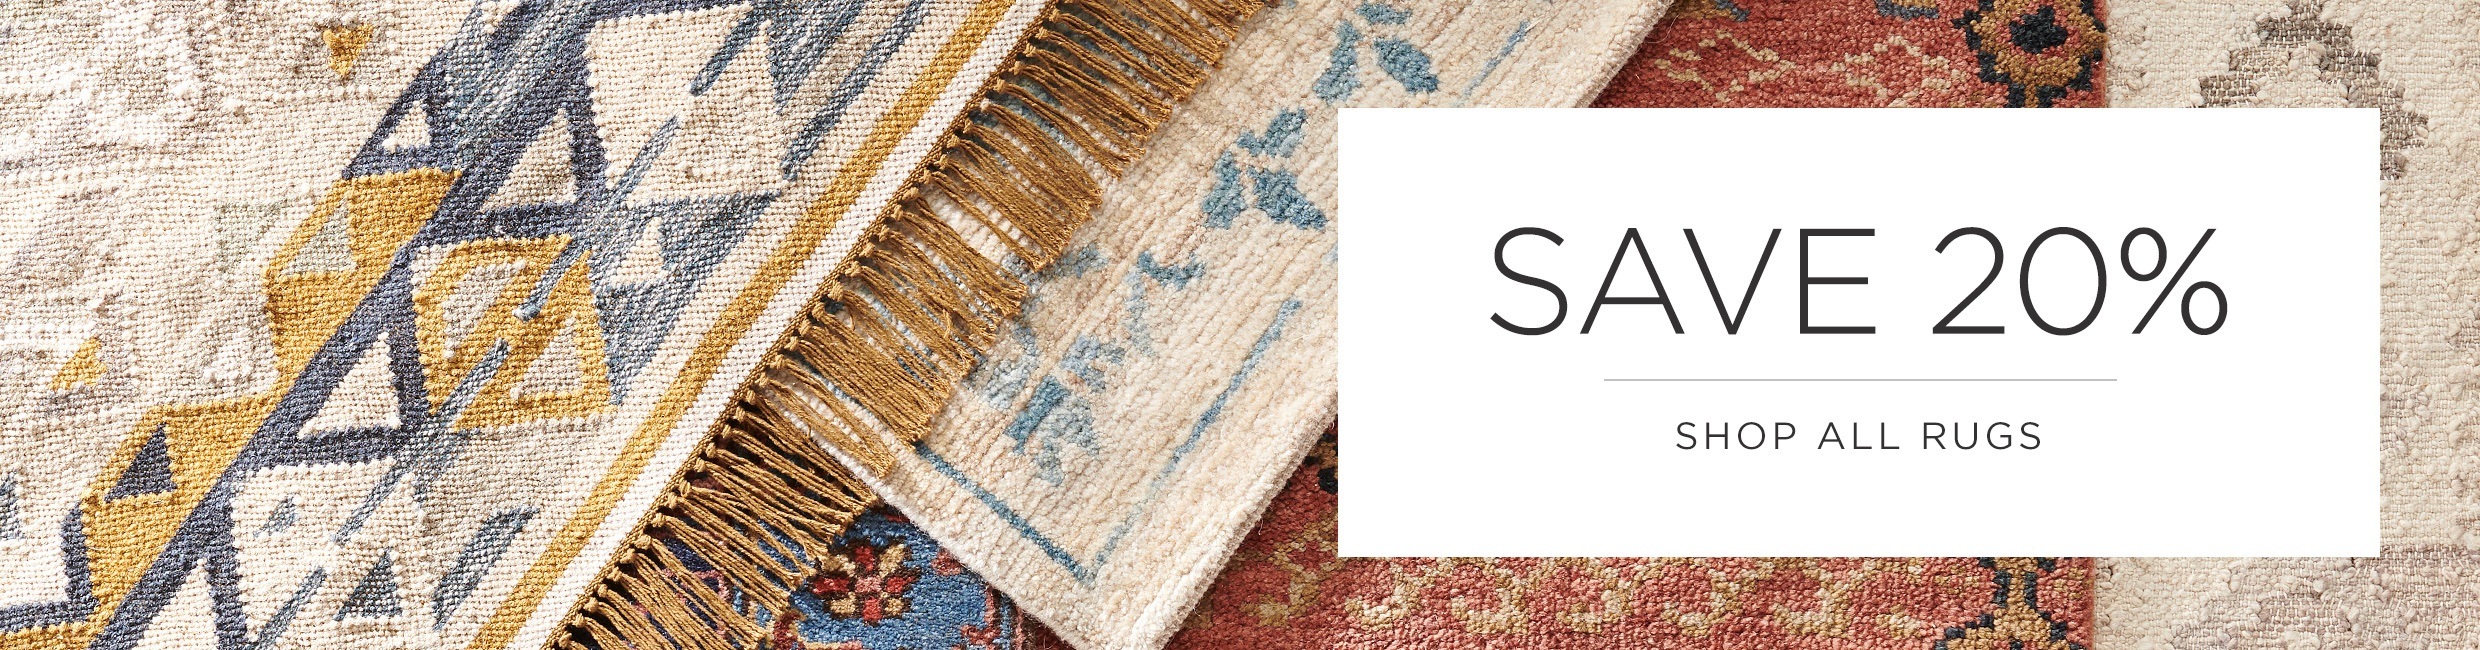 Shop the Rug Sale